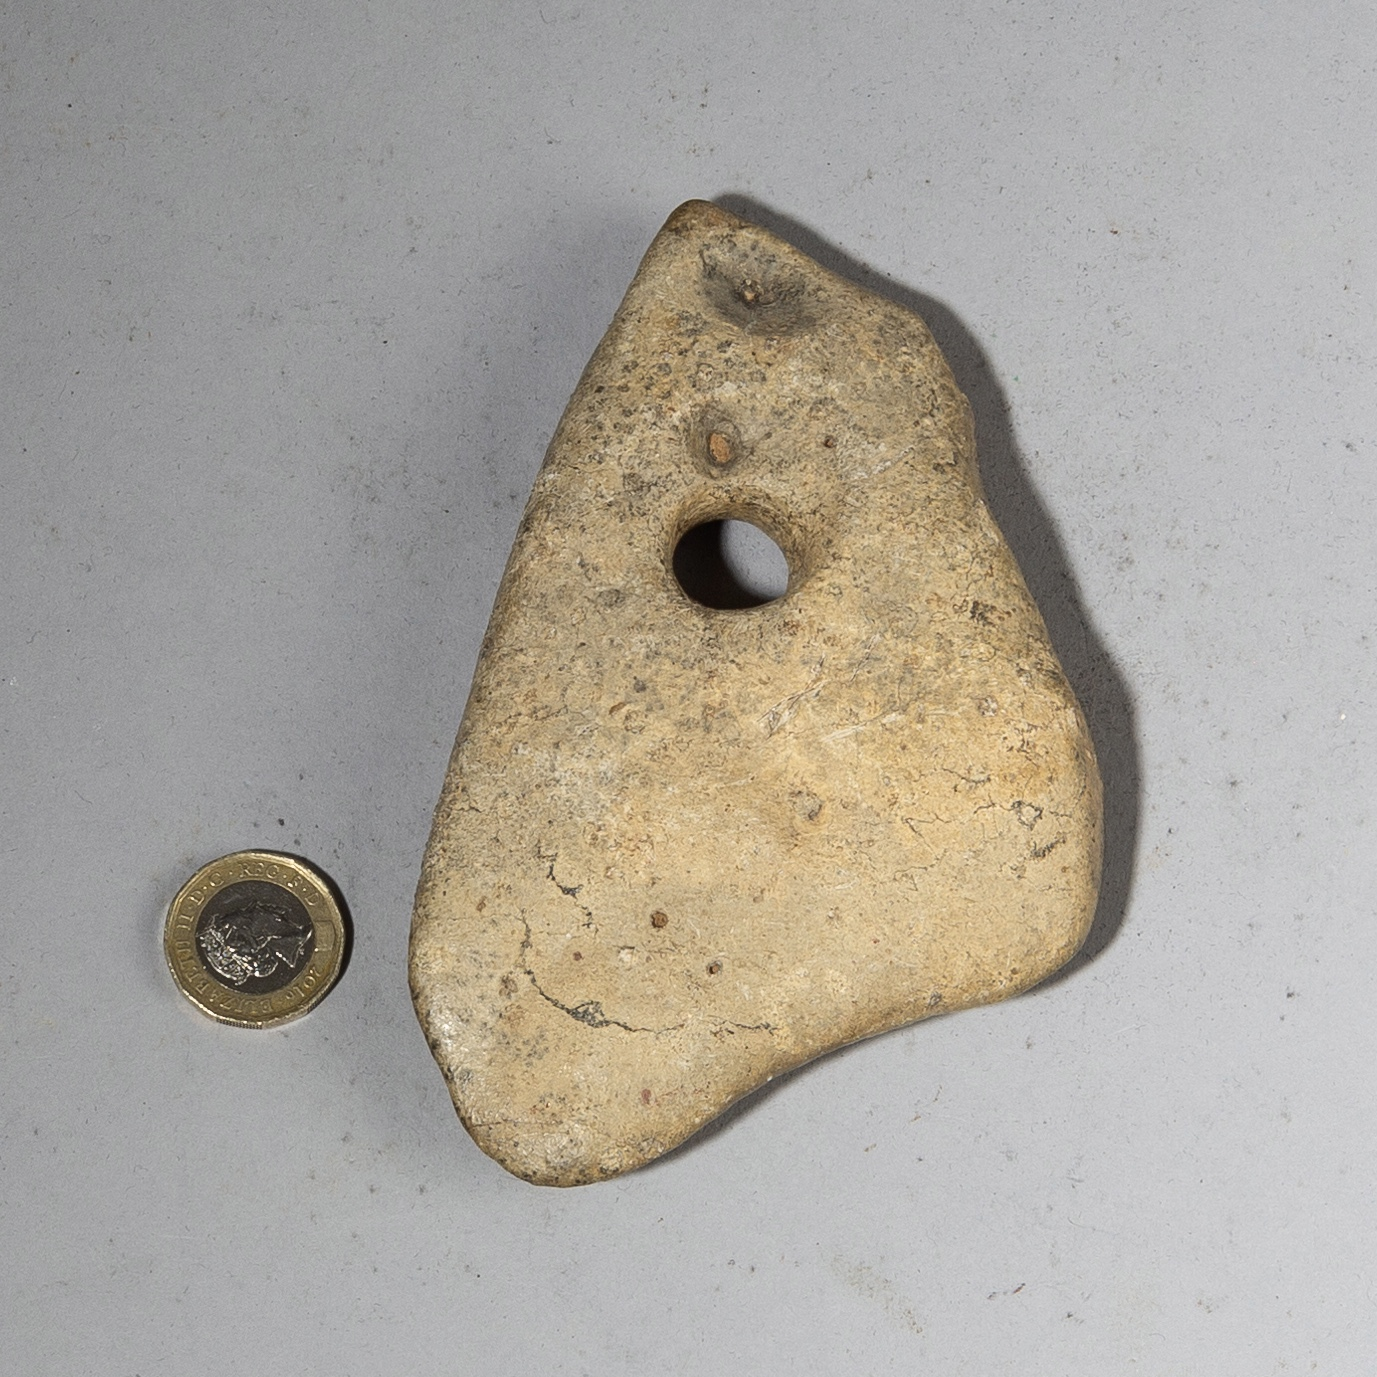 AN UNUSUAL OLD STONE CURRENCY FROM THE SAHARA( No 3653)